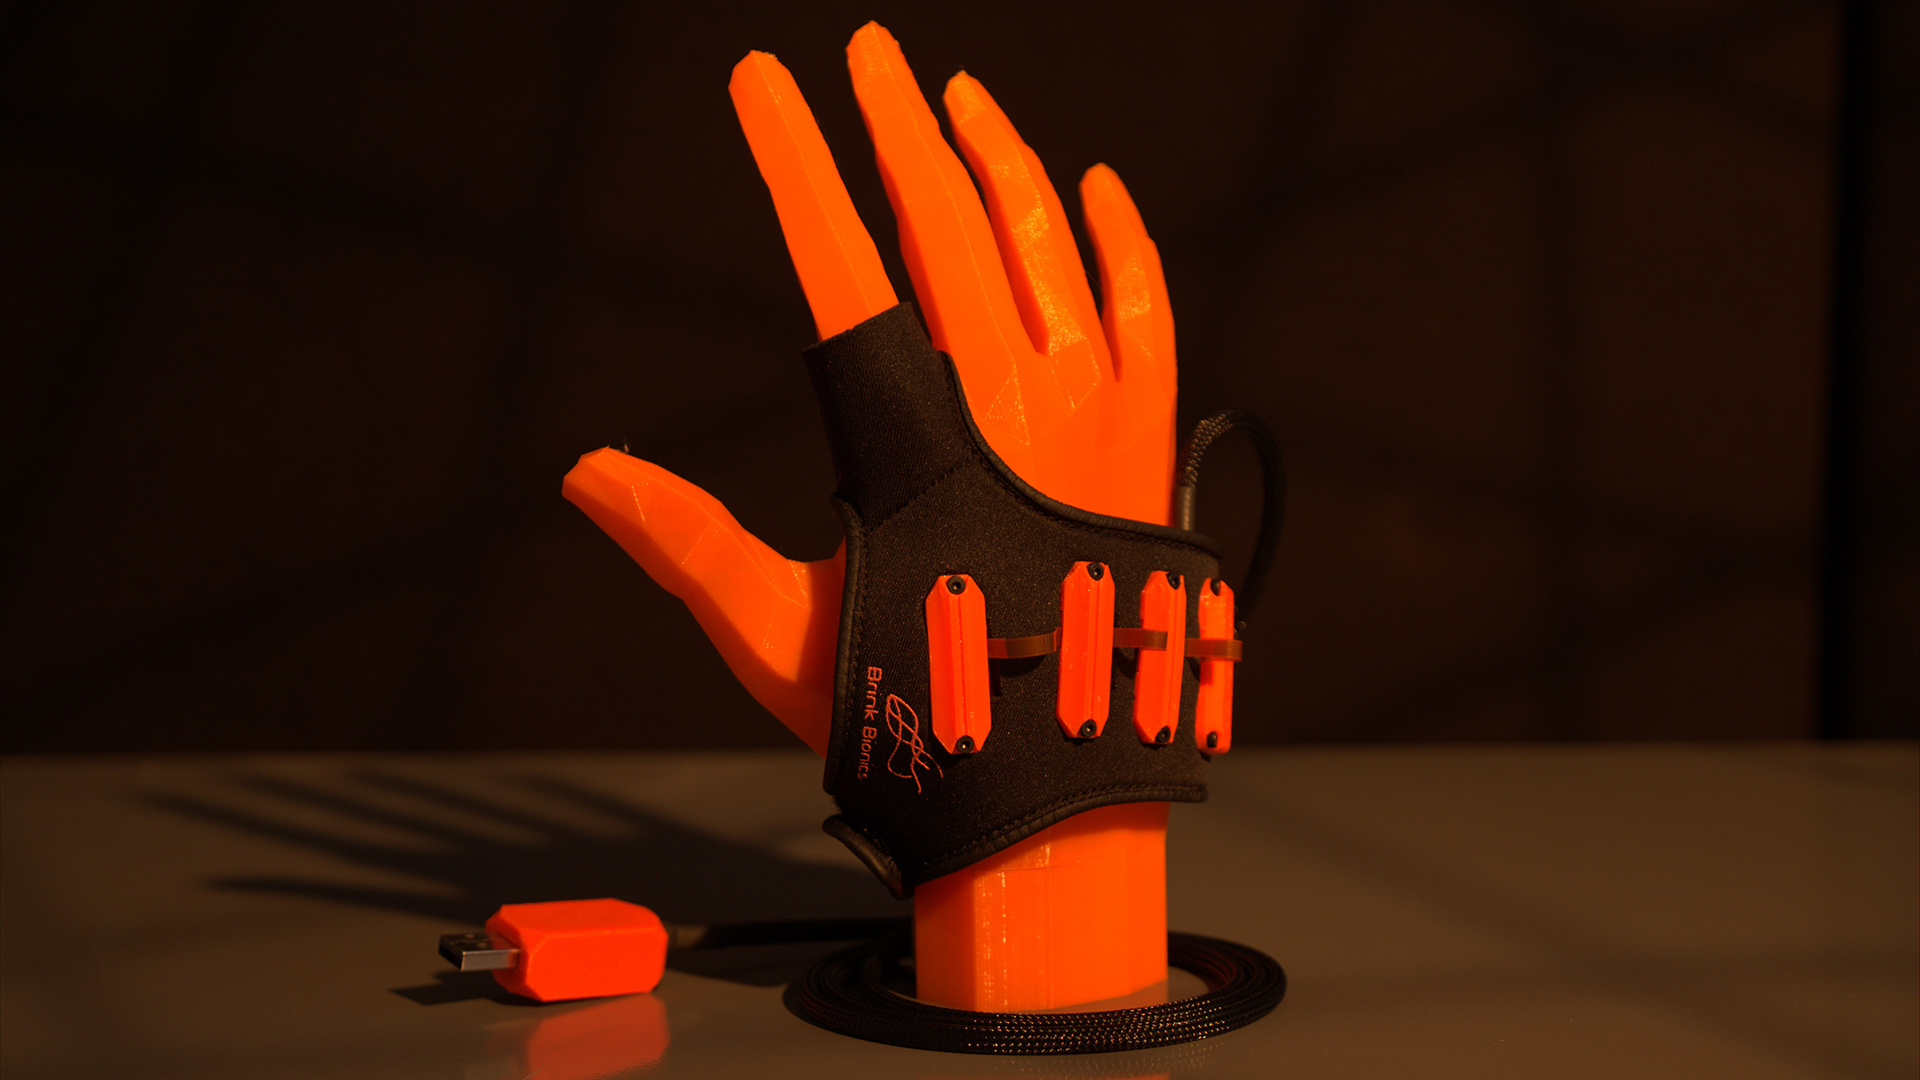 Not quite Alyx Vance's, but this neuro-controller glove claims to make you a better gamer